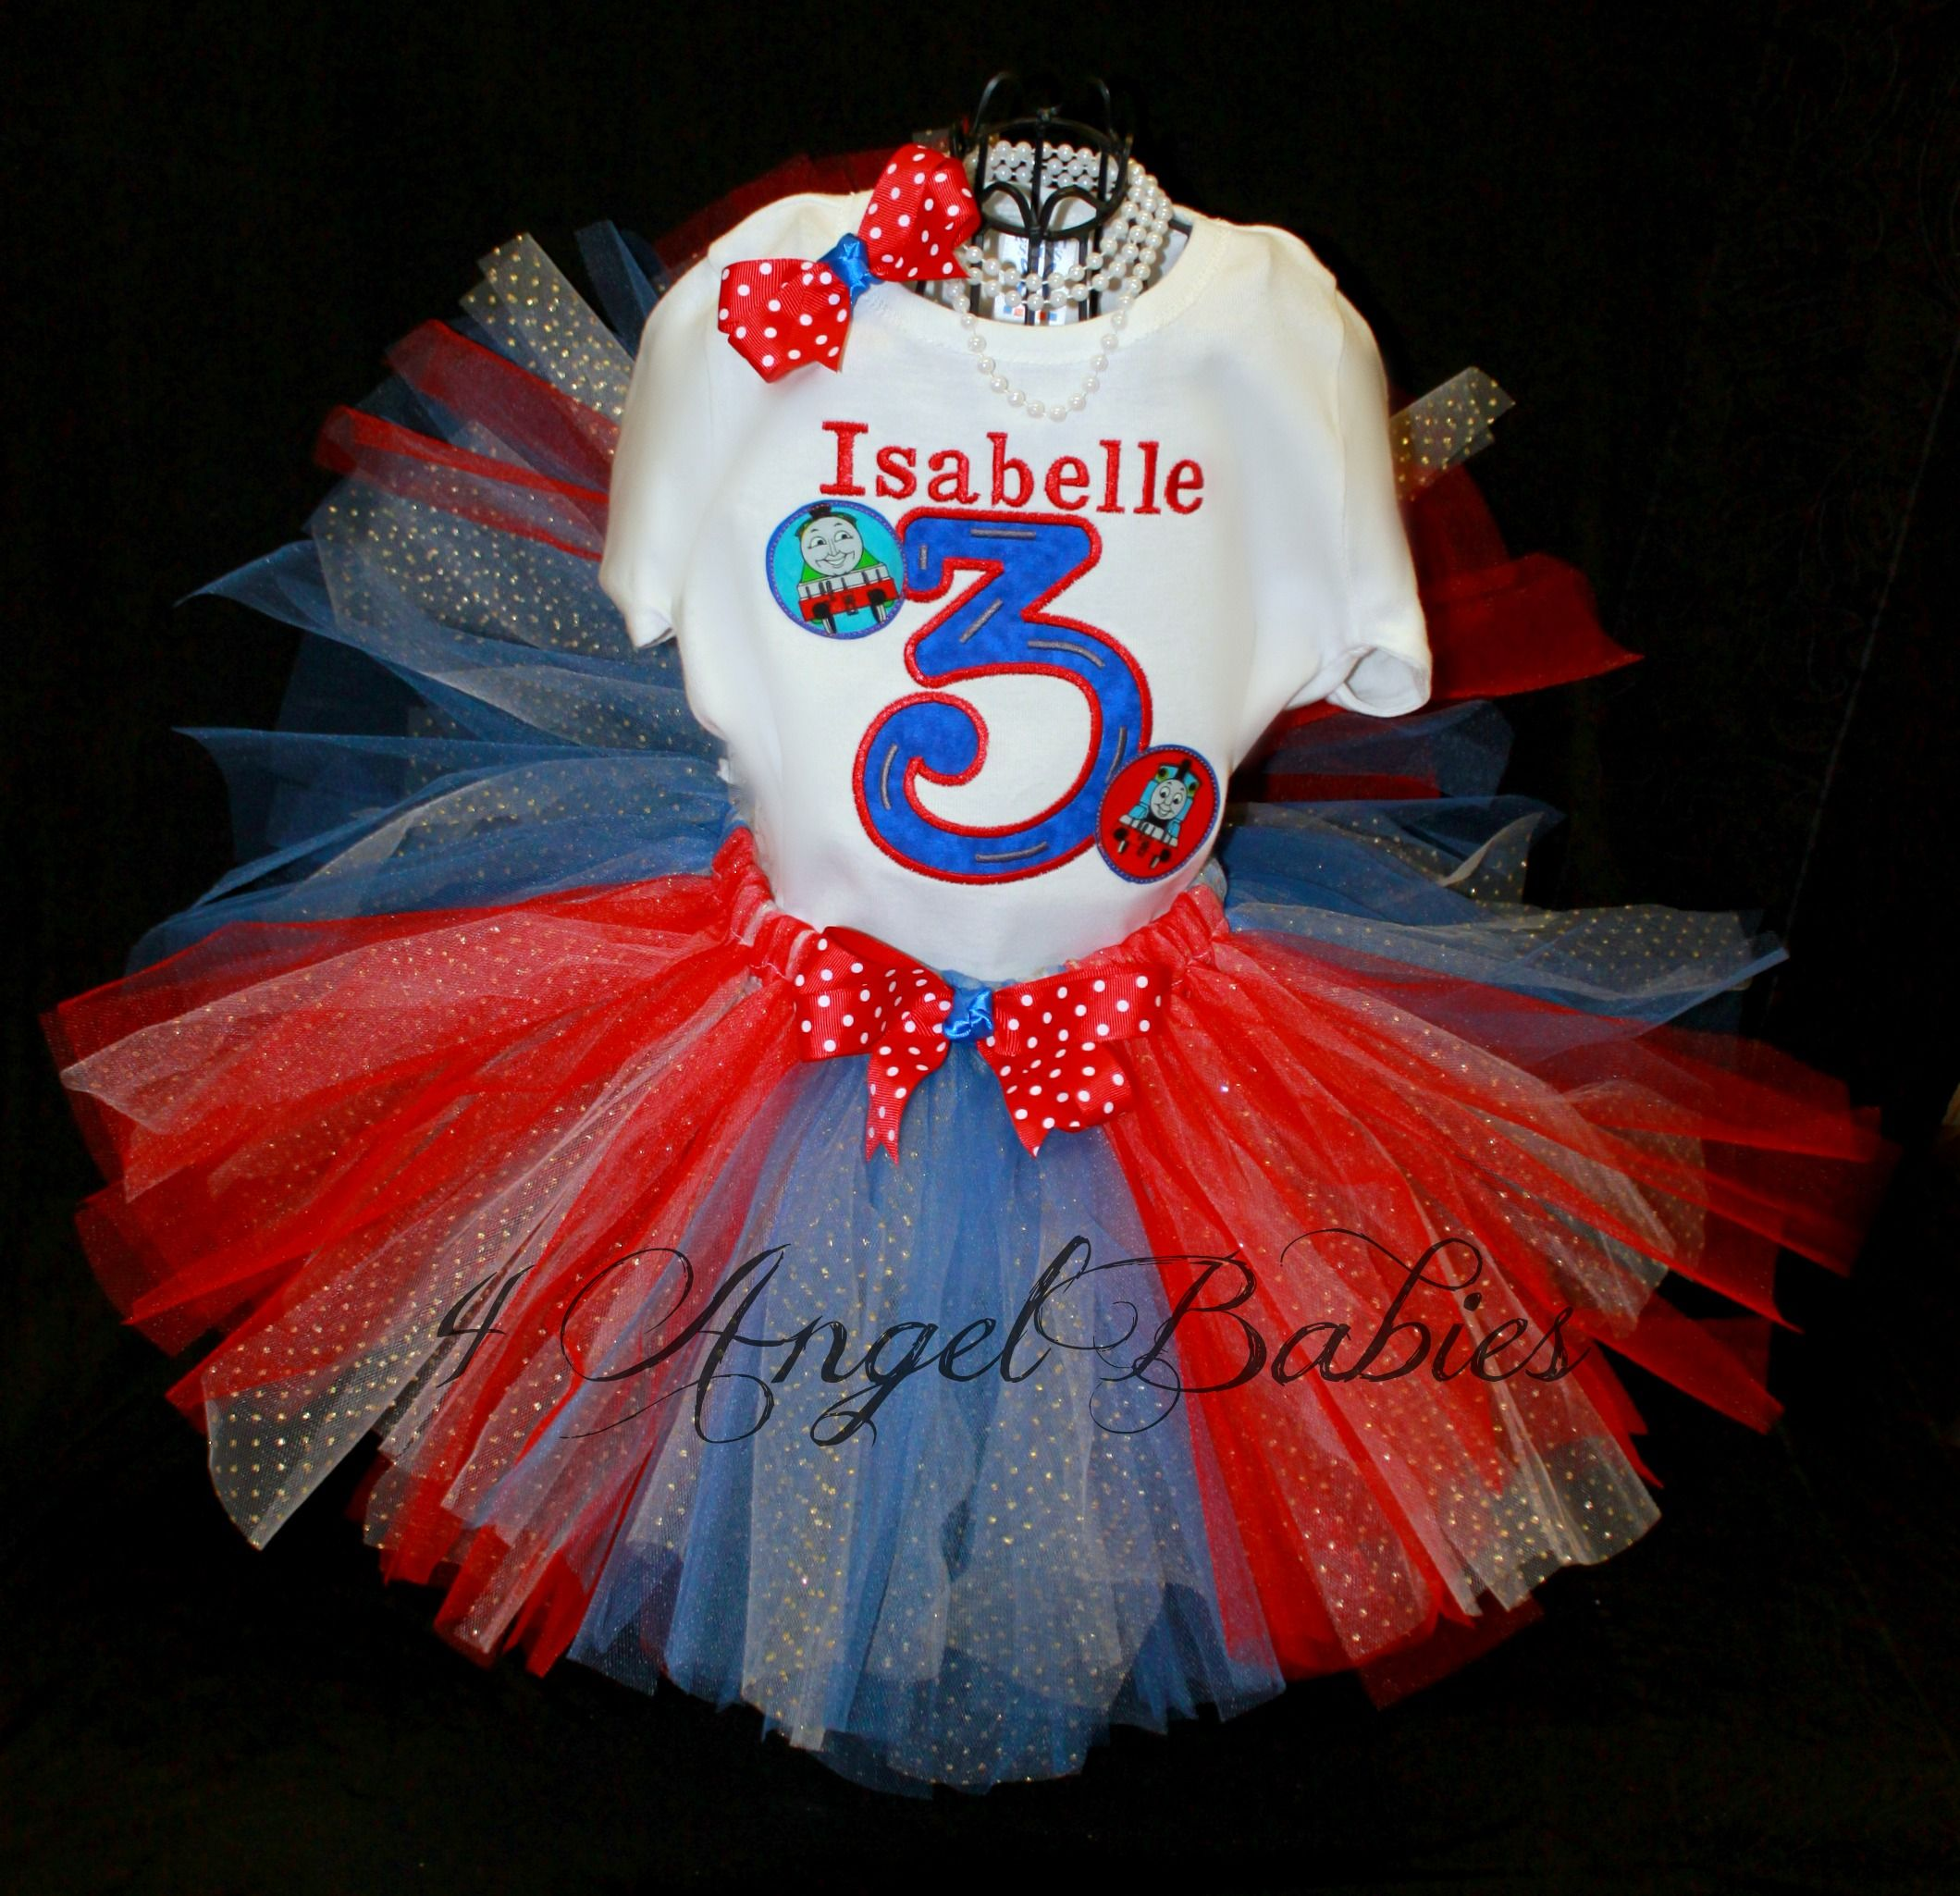 Personalized Thomas the Train Inspired Girls Birthday Tutu Outfit Red & Blue personalized with name, number and size. Includes hair piece, tutu, and top, shirt or onesie